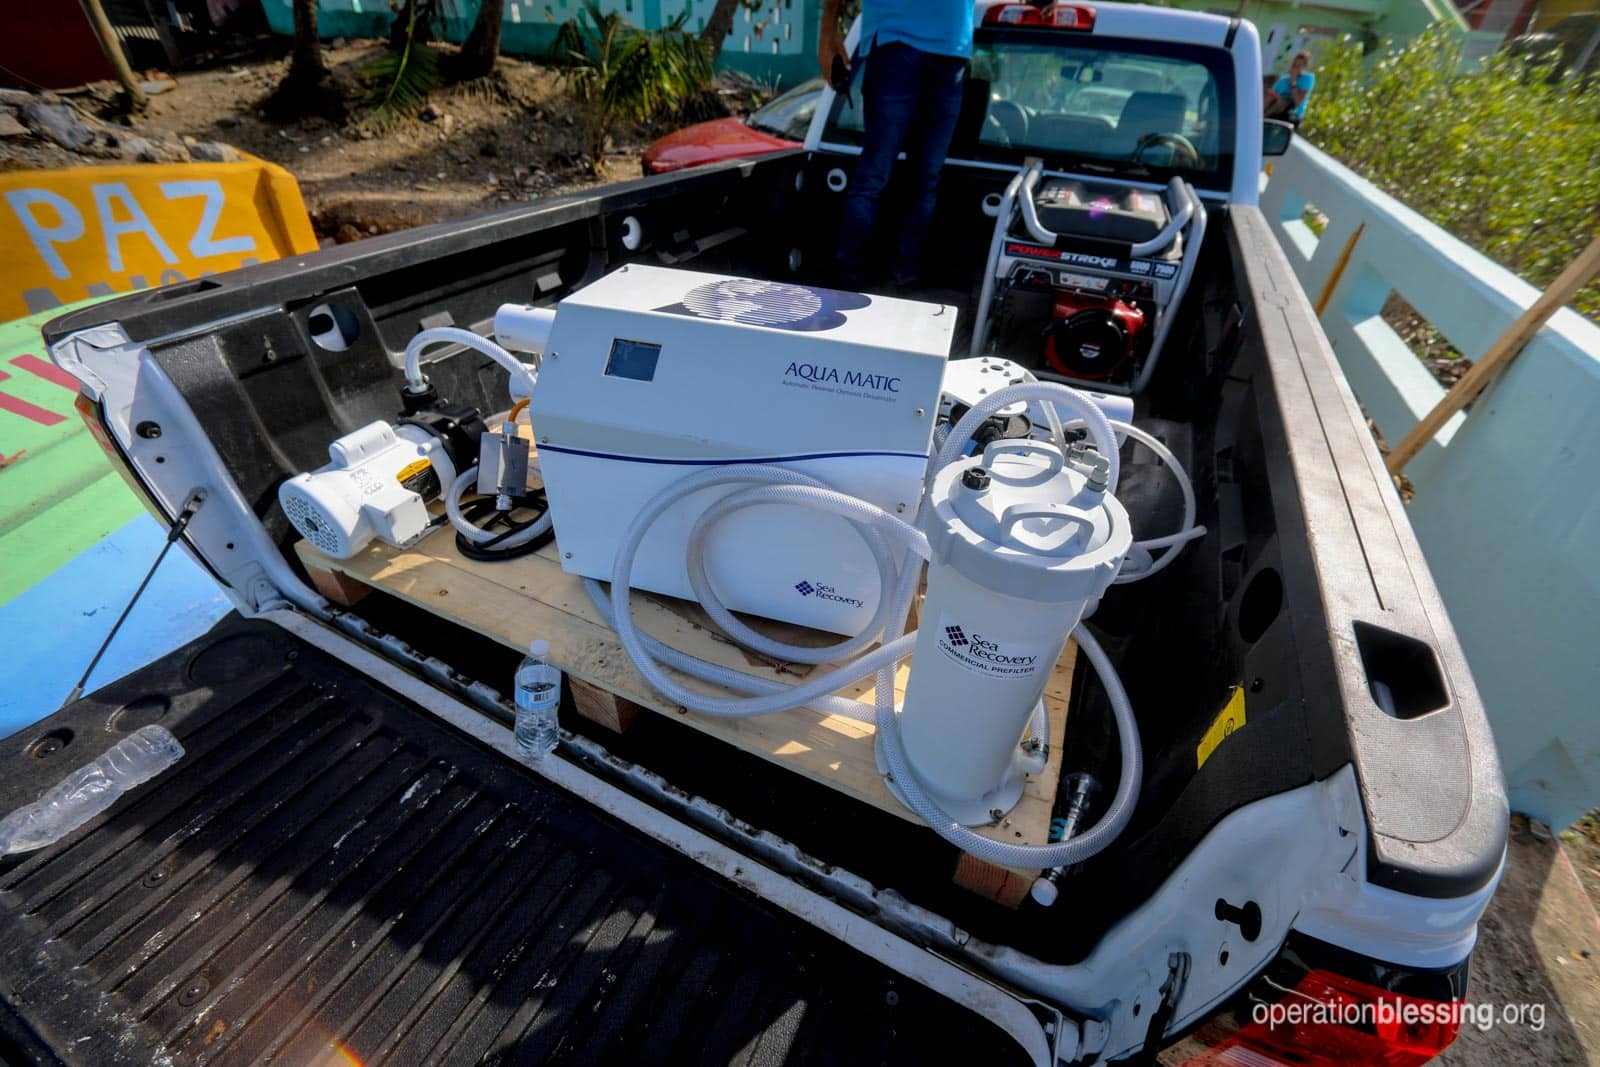 The Aqua Matic Reverse Osmosis Desalinator in the back of a truck.